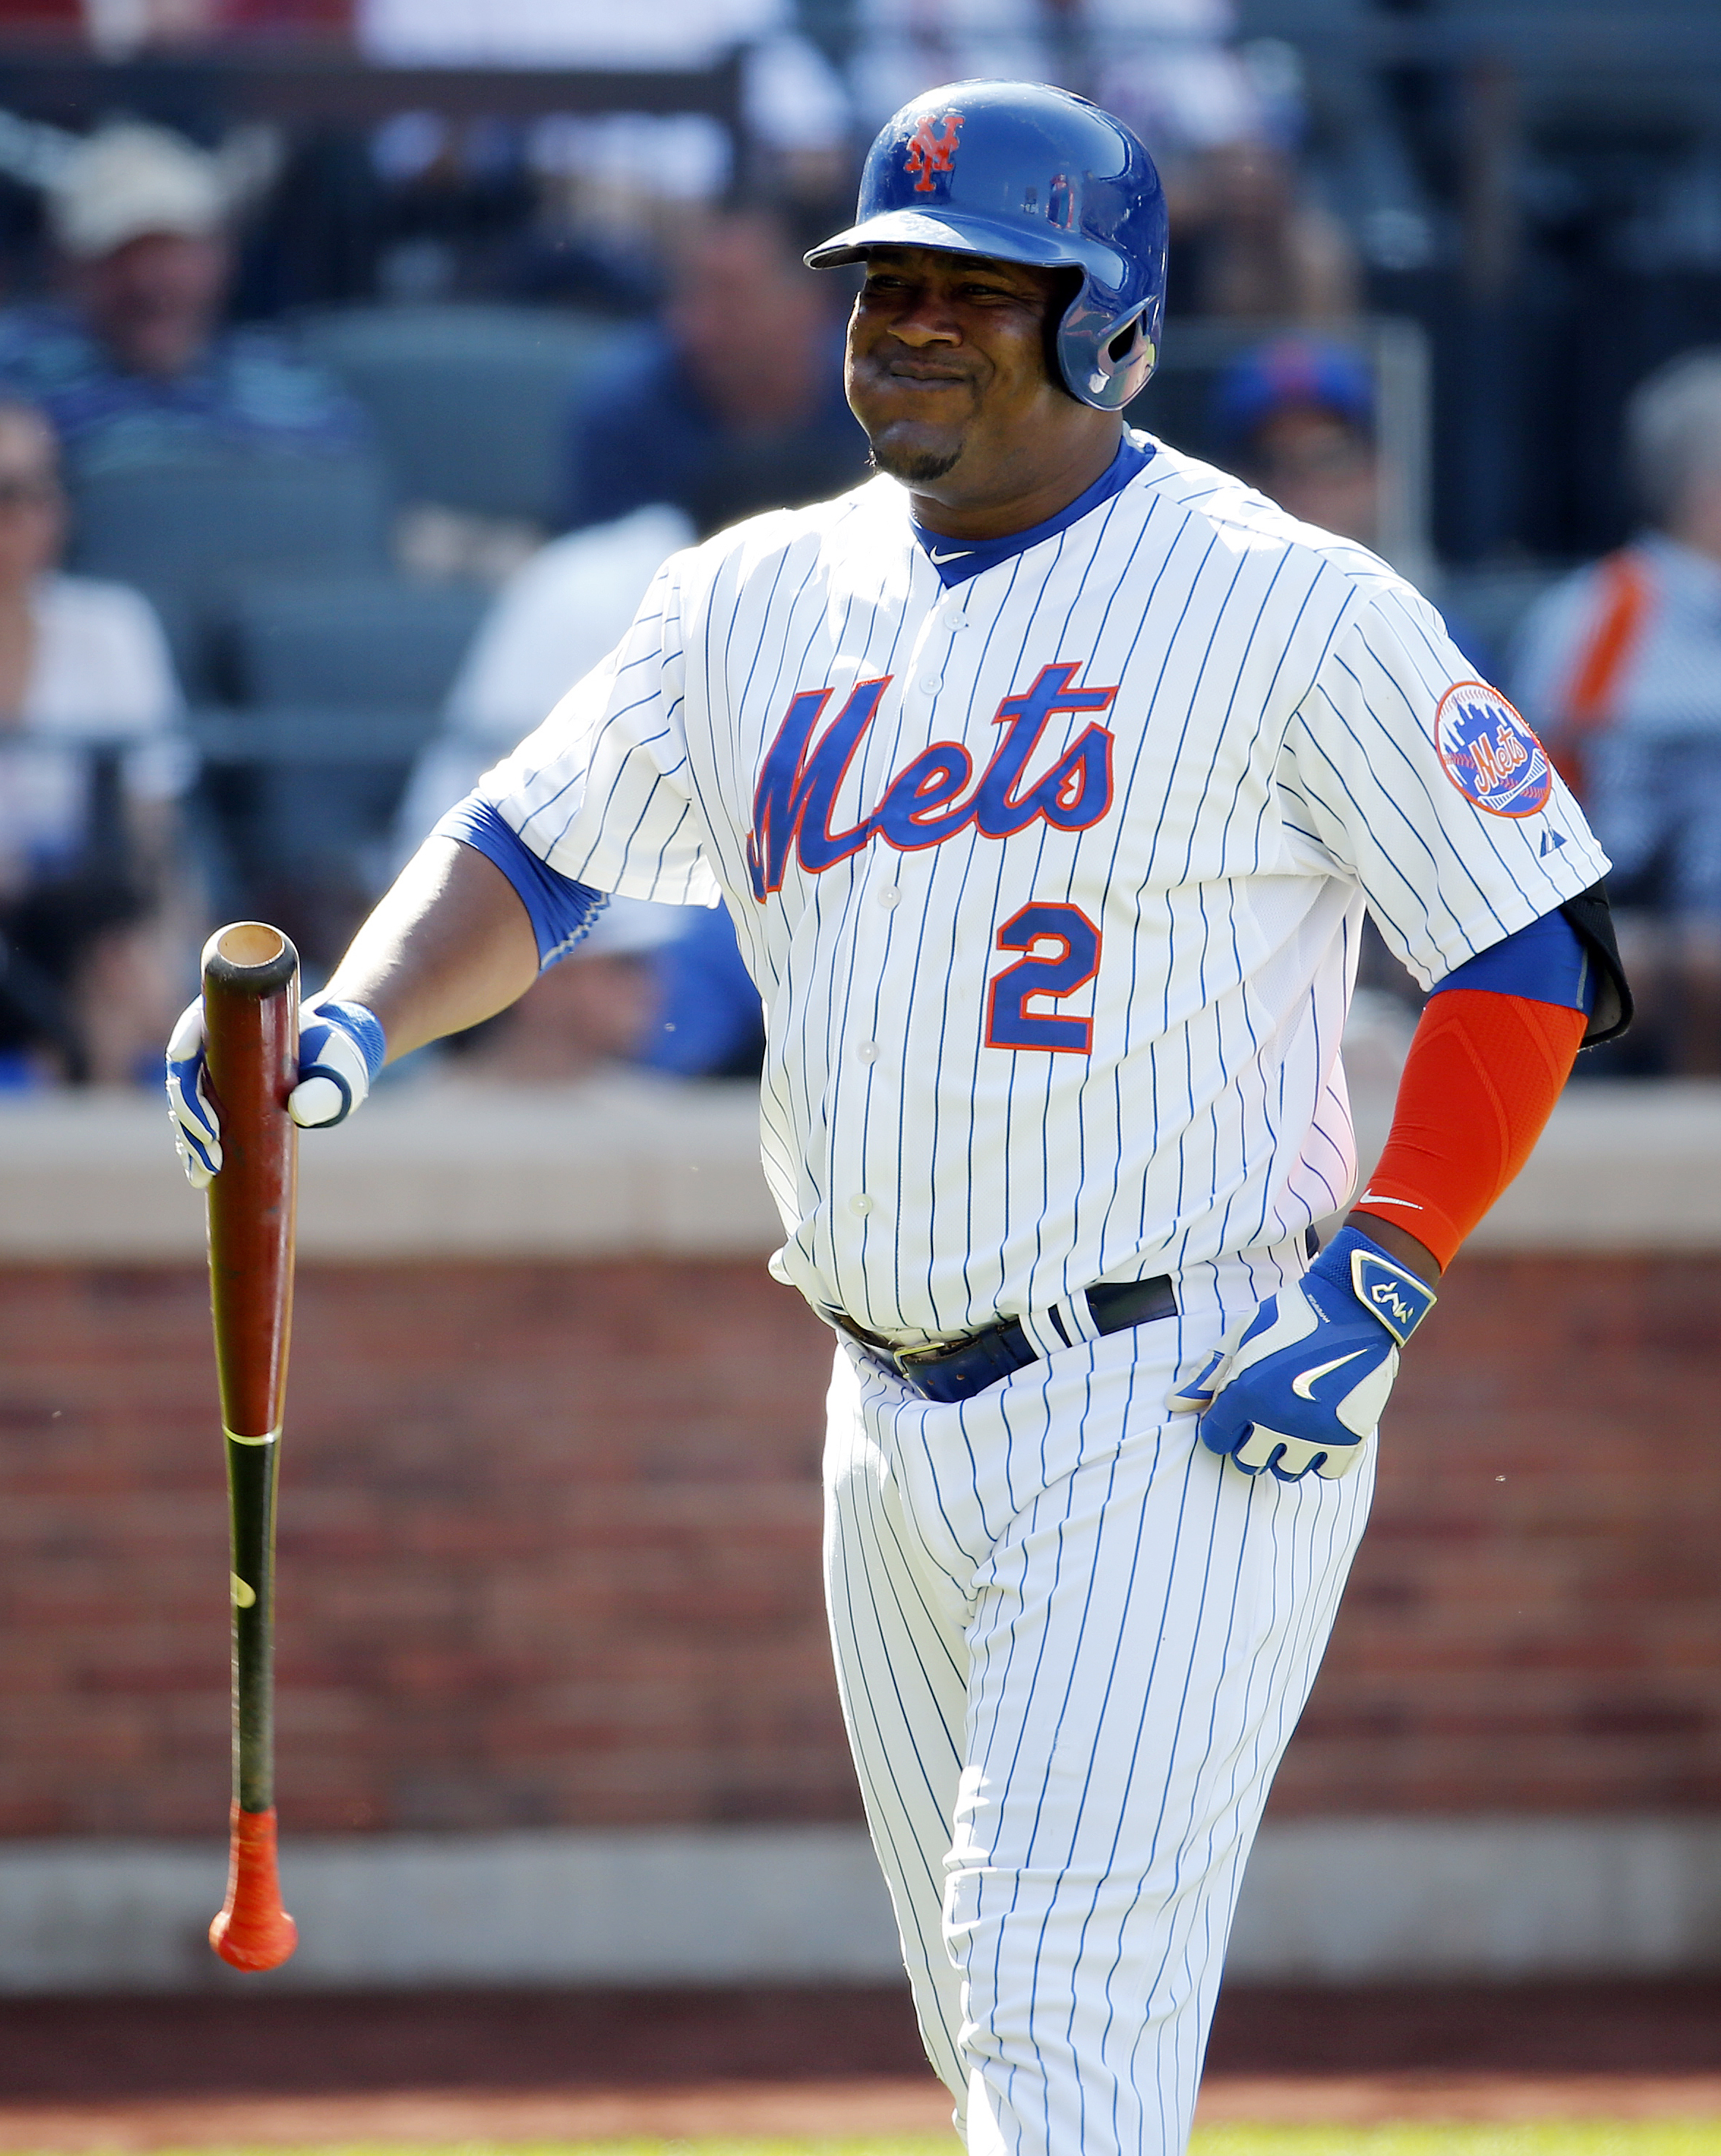 New York Mets' Juan Uribe reacts after striking out with the bases loaded against New York Yankees relief pitcher Justin Wilson to end the sixth inning of a baseball game, Saturday, Sept. 19, 2015, in New York. (AP Photo/Julio Cortez)